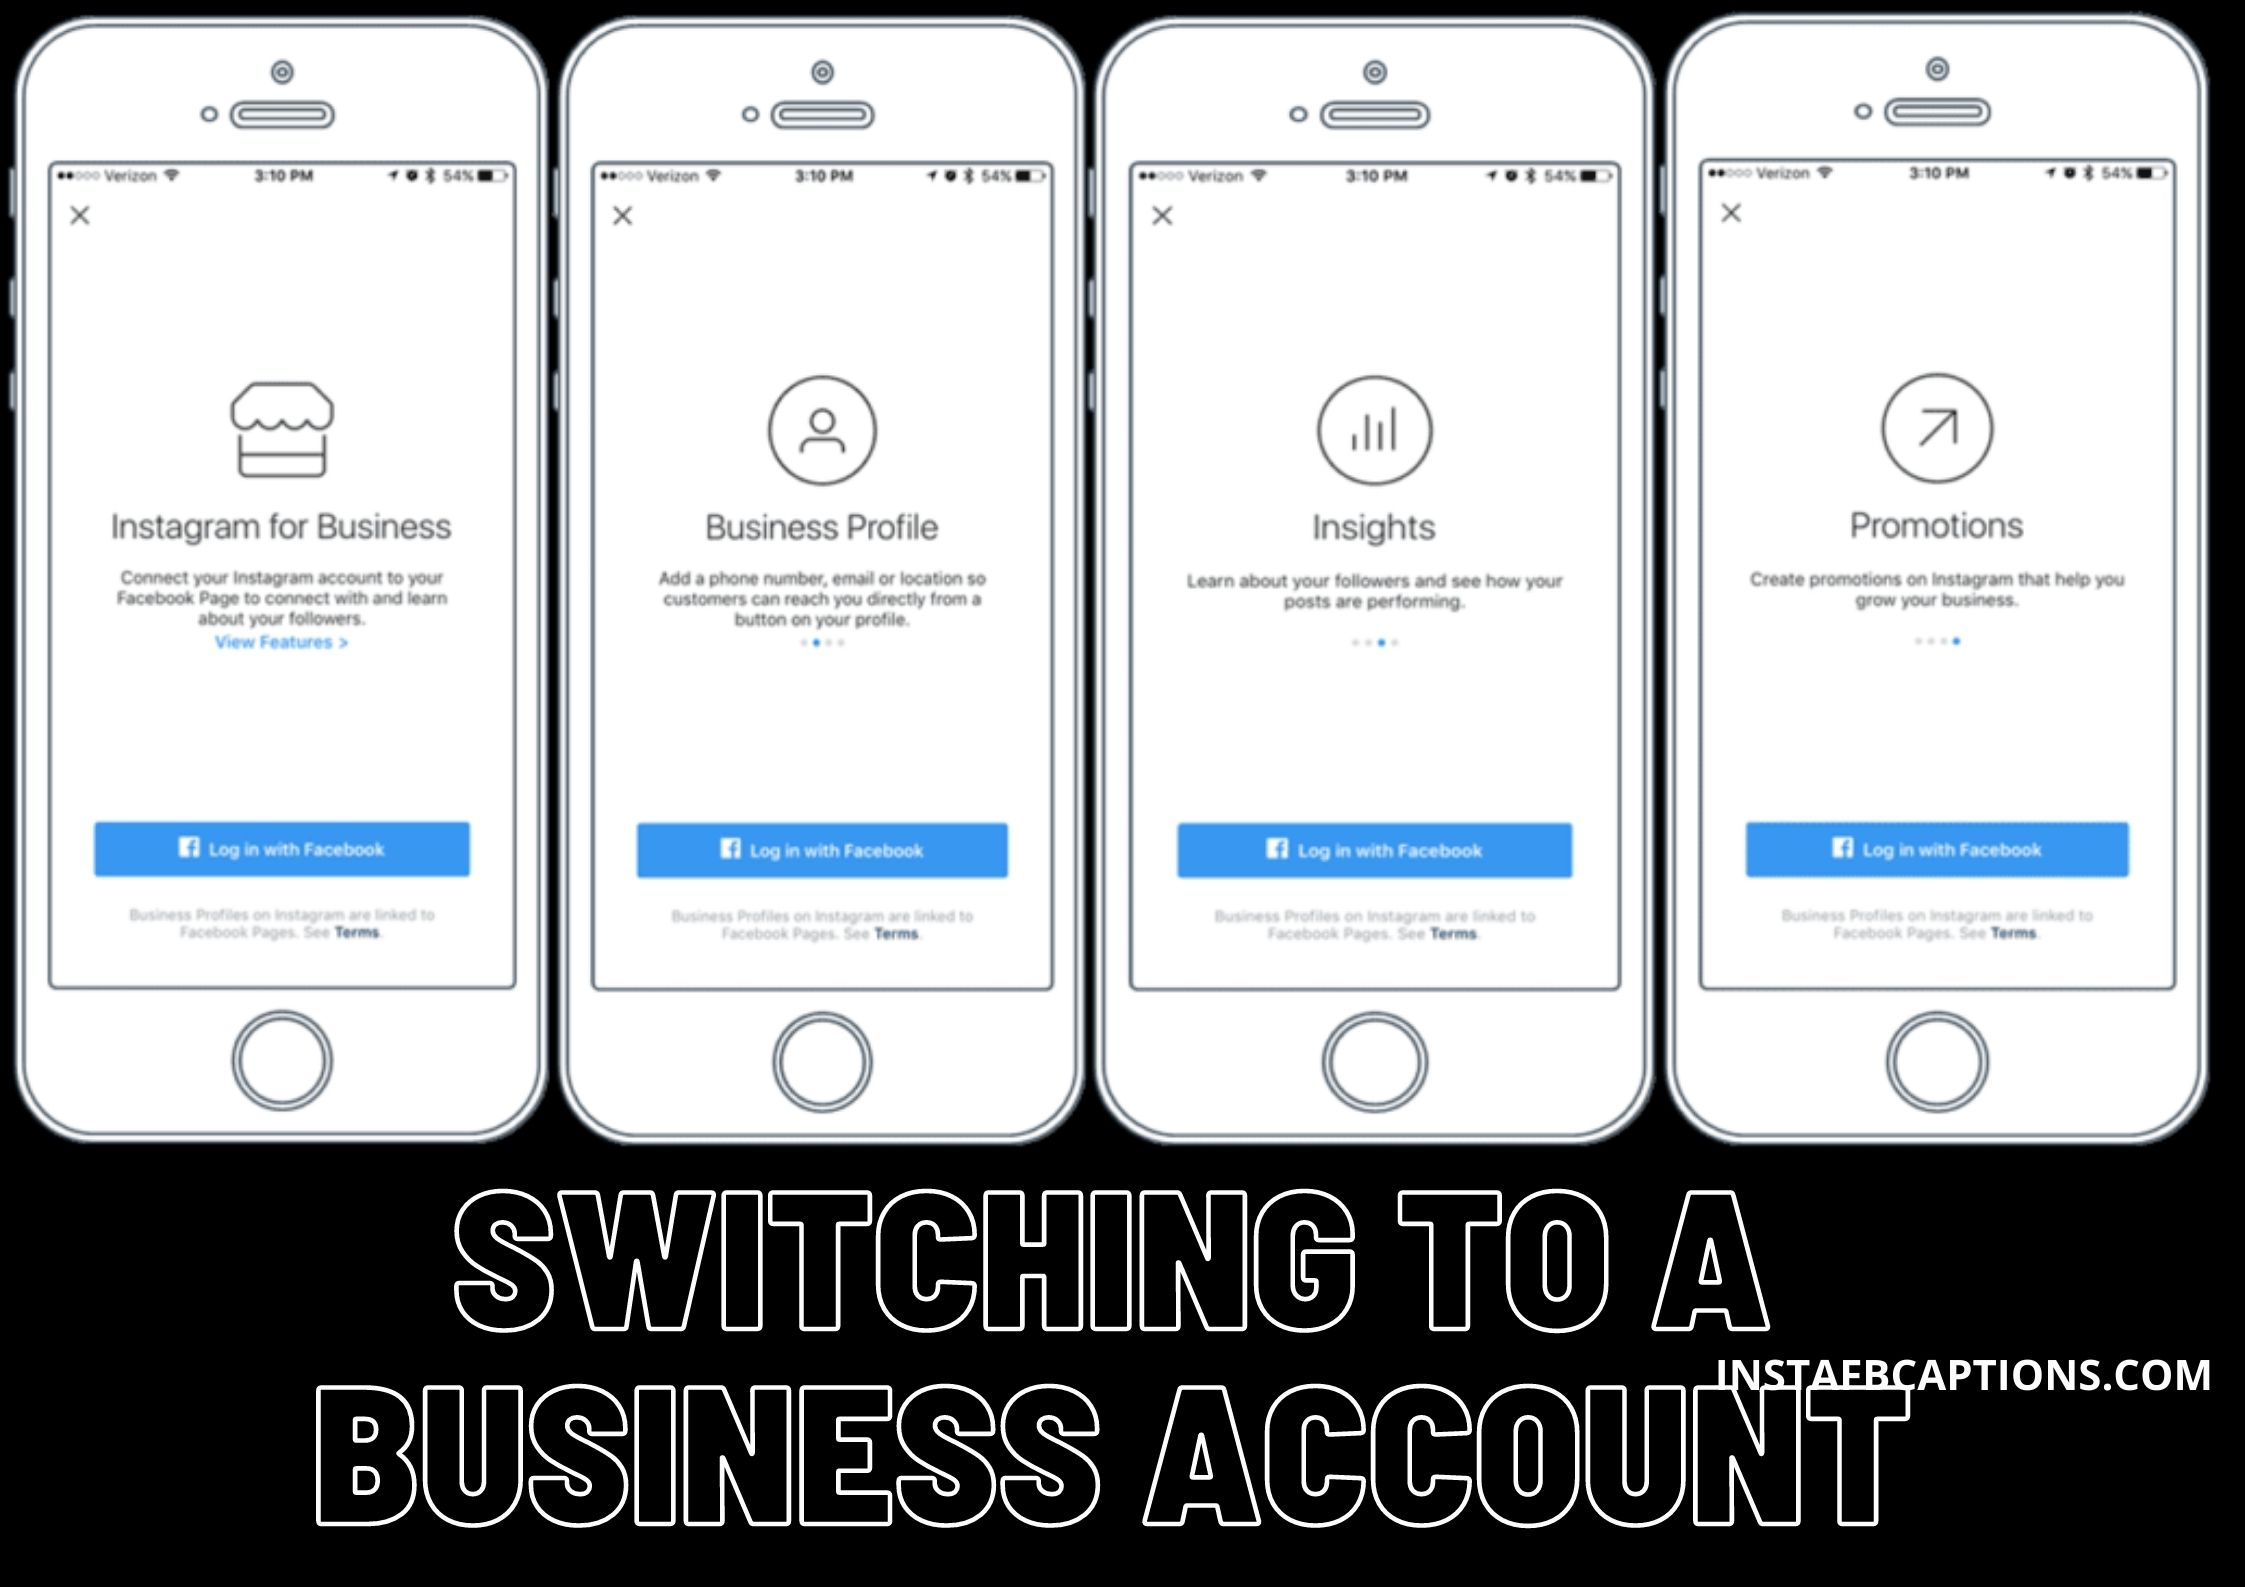 Switching To A Business Account  - Switching to a Business Account - INSTAGRAM INFLUENCING – Make Money From Instagram